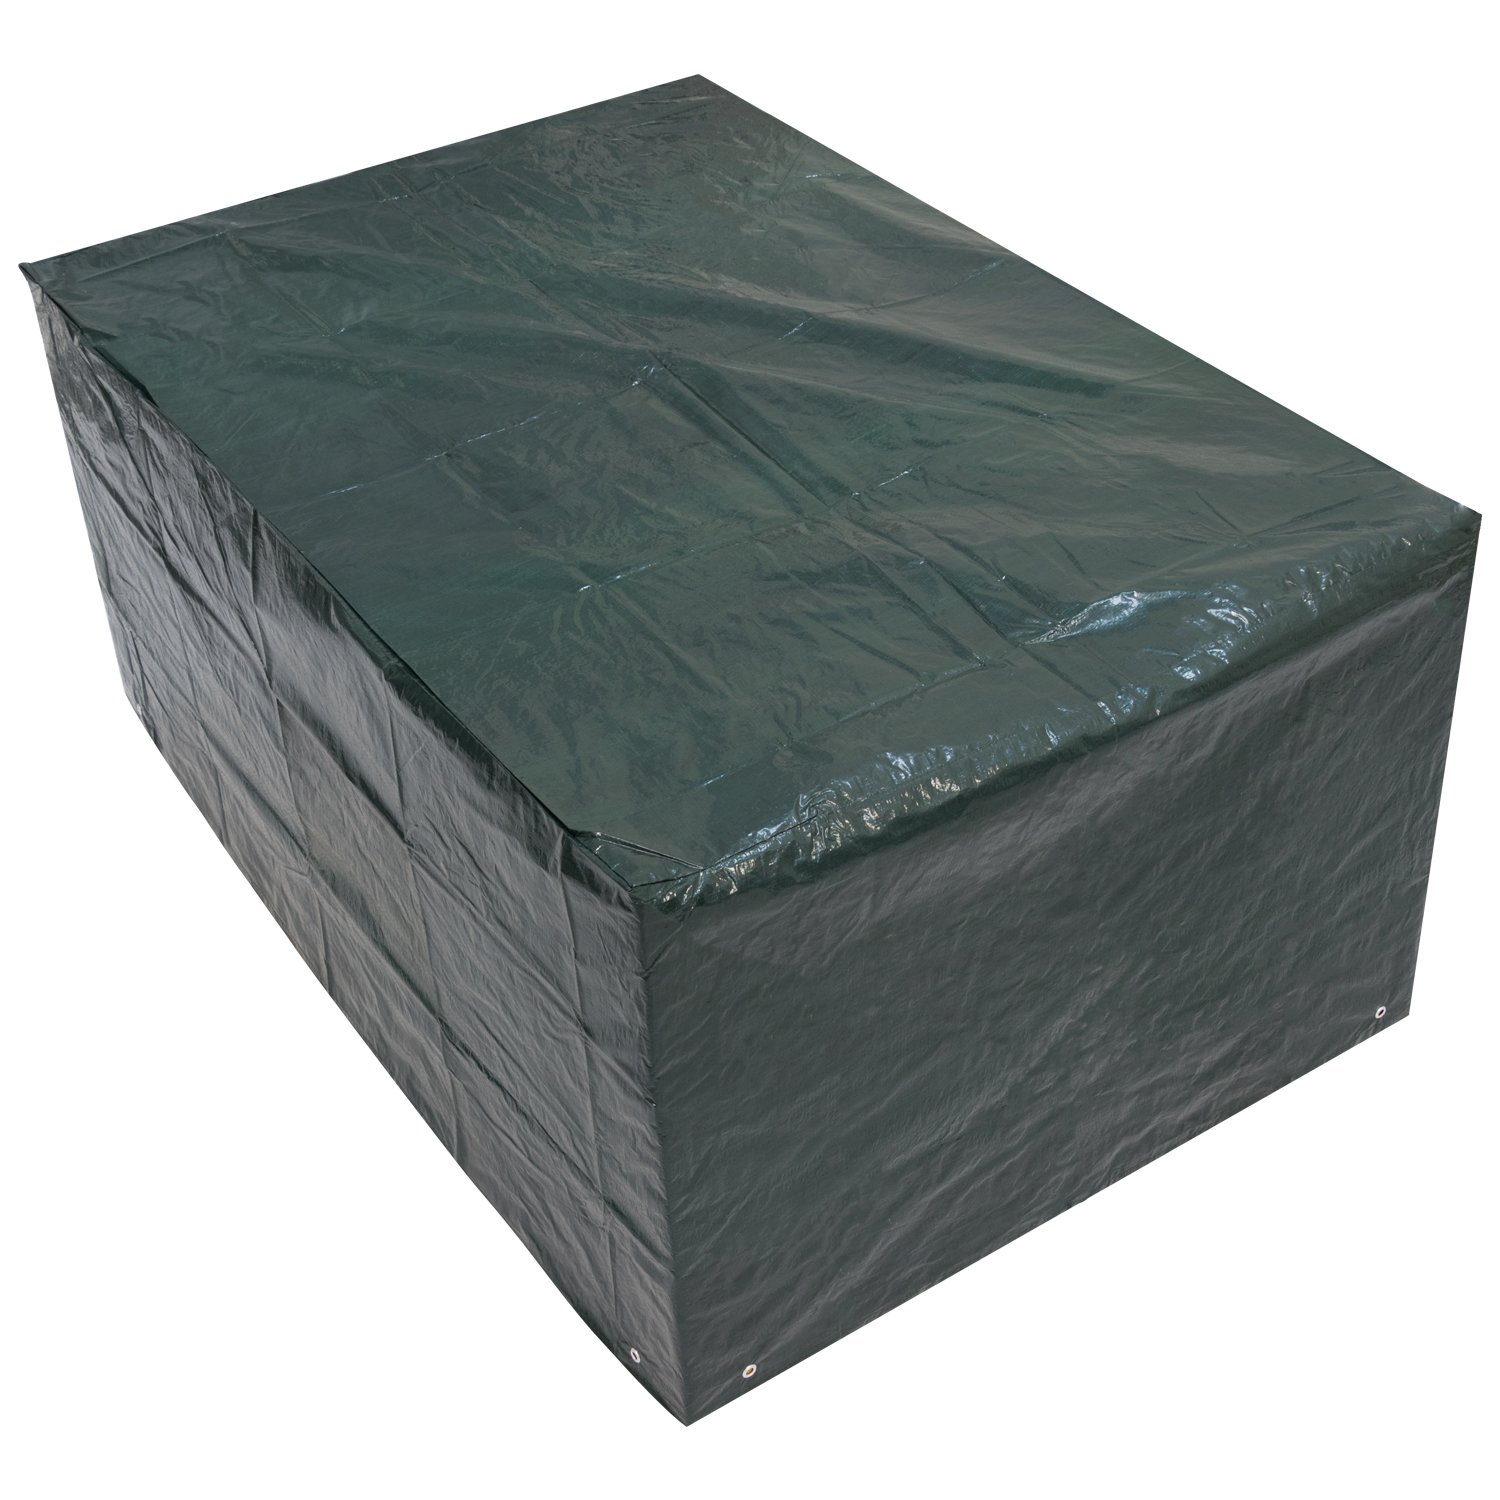 Small Rectangle Outdoor Garden Table Cover 1.52m x 1.04m x 0.71m / 5ft x 3.4ft x 2.3ft Woodside